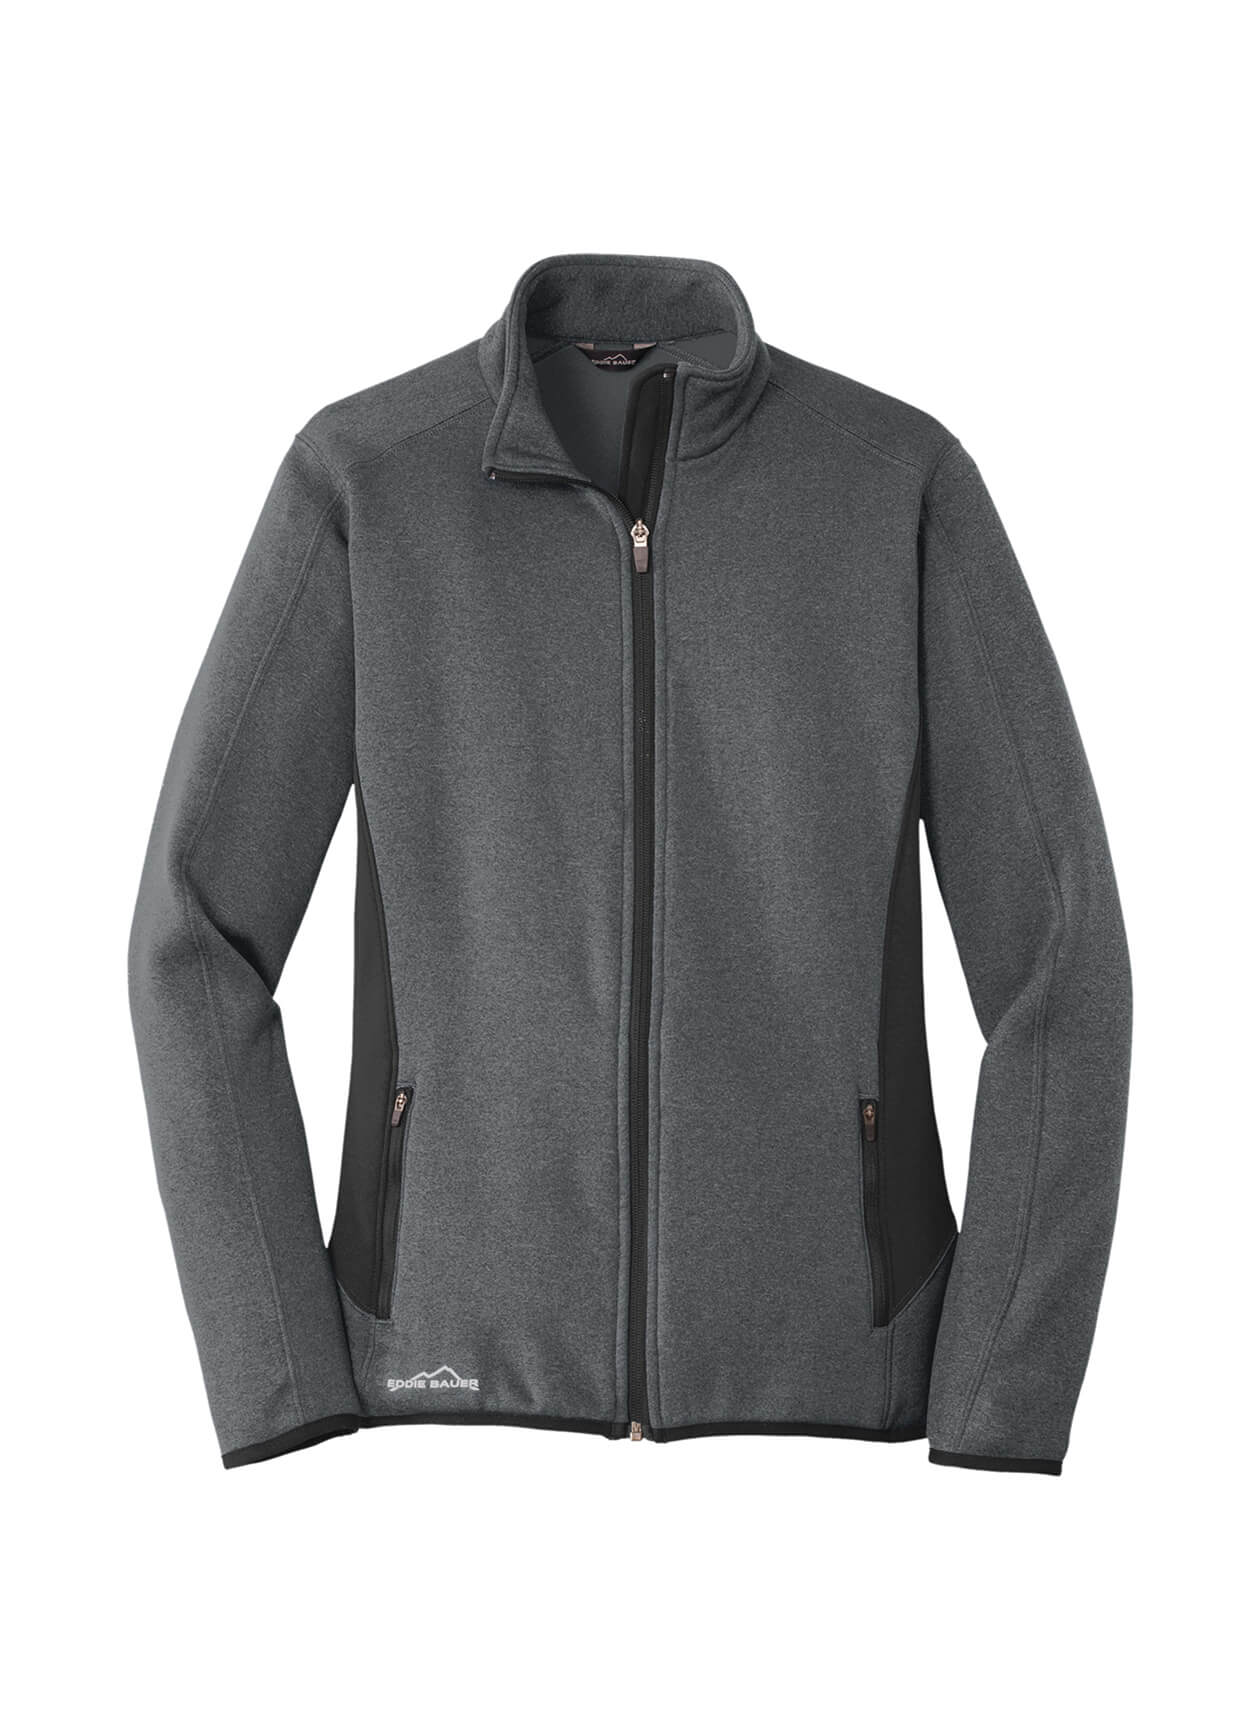 Eddie Bauer Women's Full-Zip Heather Stretch Fleece Jacket